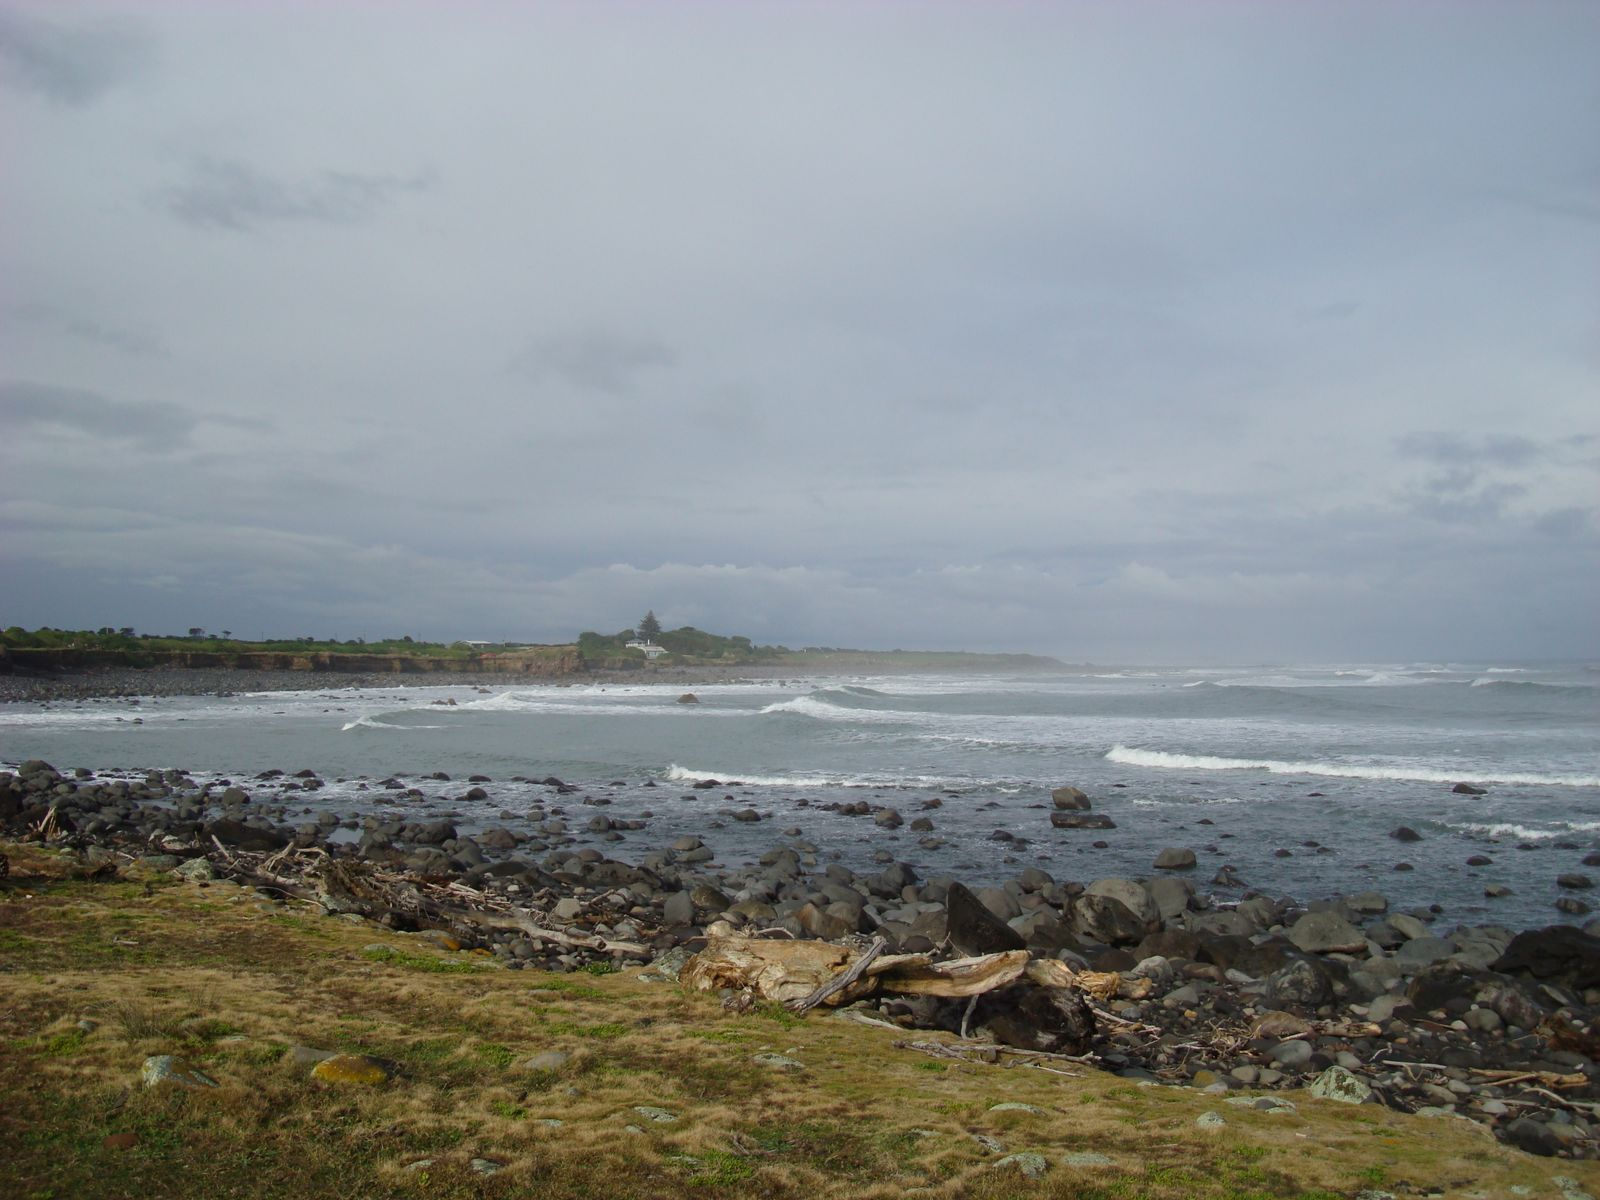 """Beaches on the """"Surf Coast"""" (SH45) between New Plymouth and Hawera"""